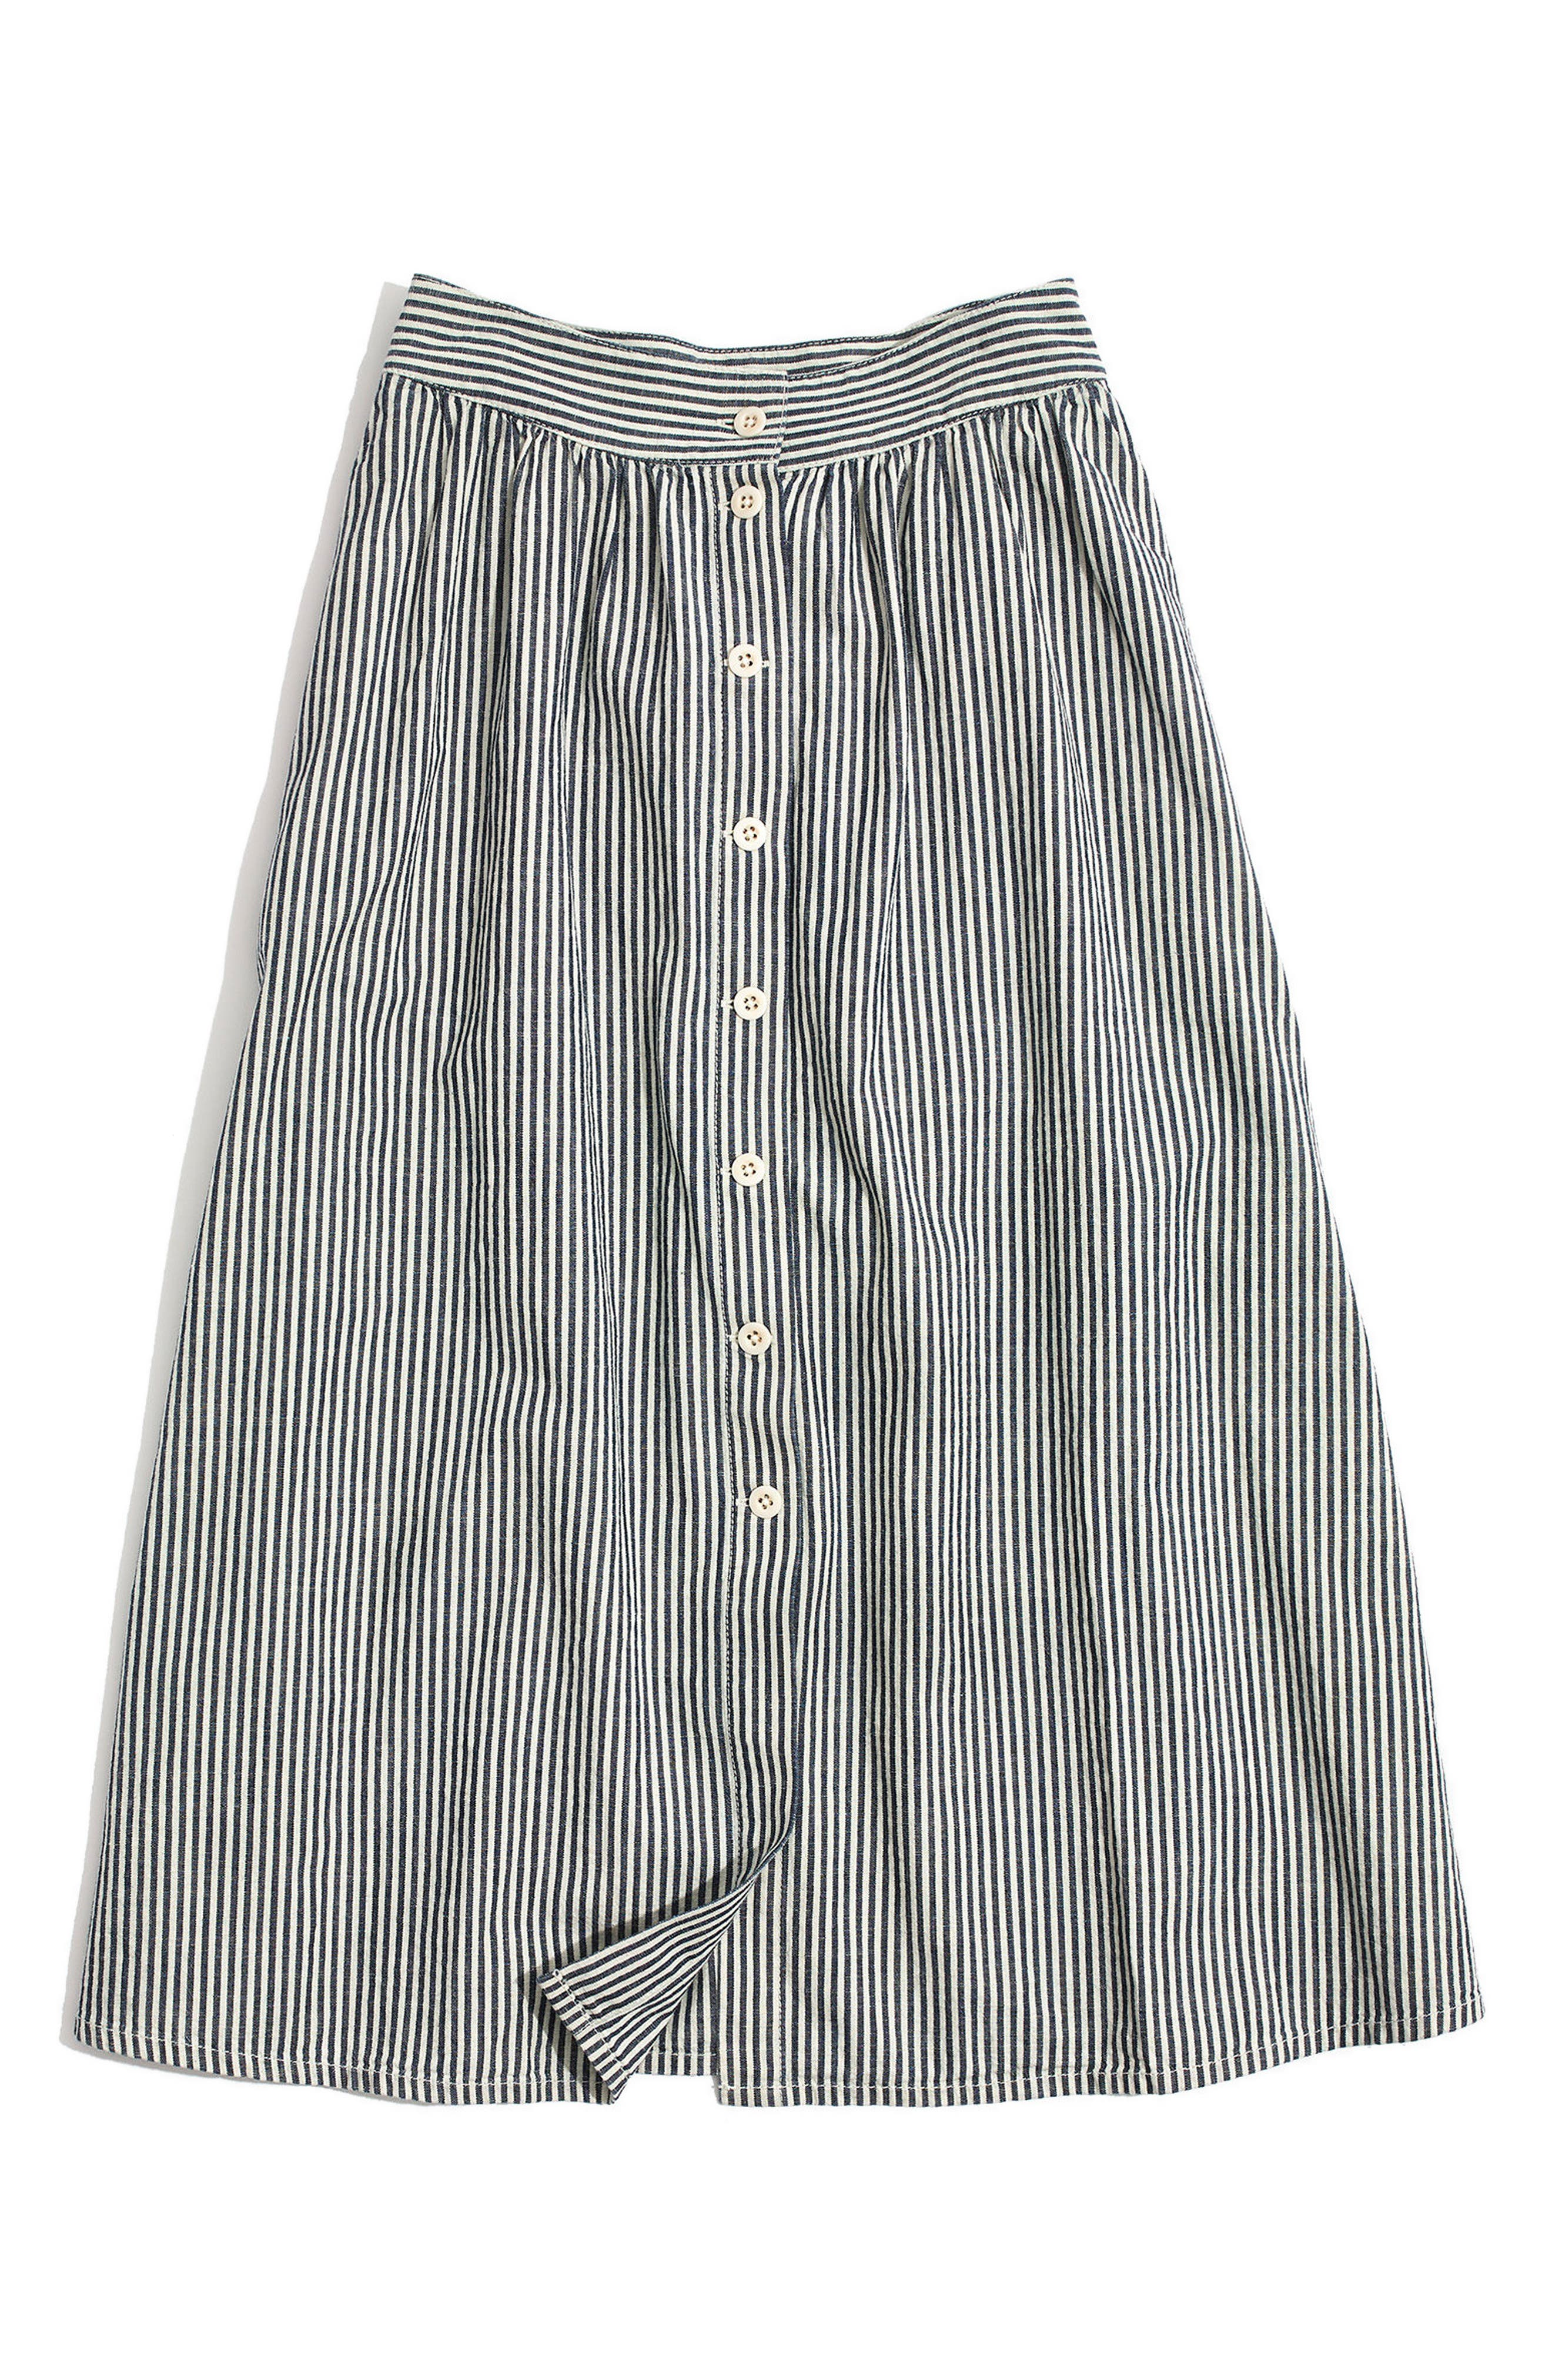 Palisade Chambray Stripe Button Front Midi Skirt,                             Alternate thumbnail 3, color,                             400